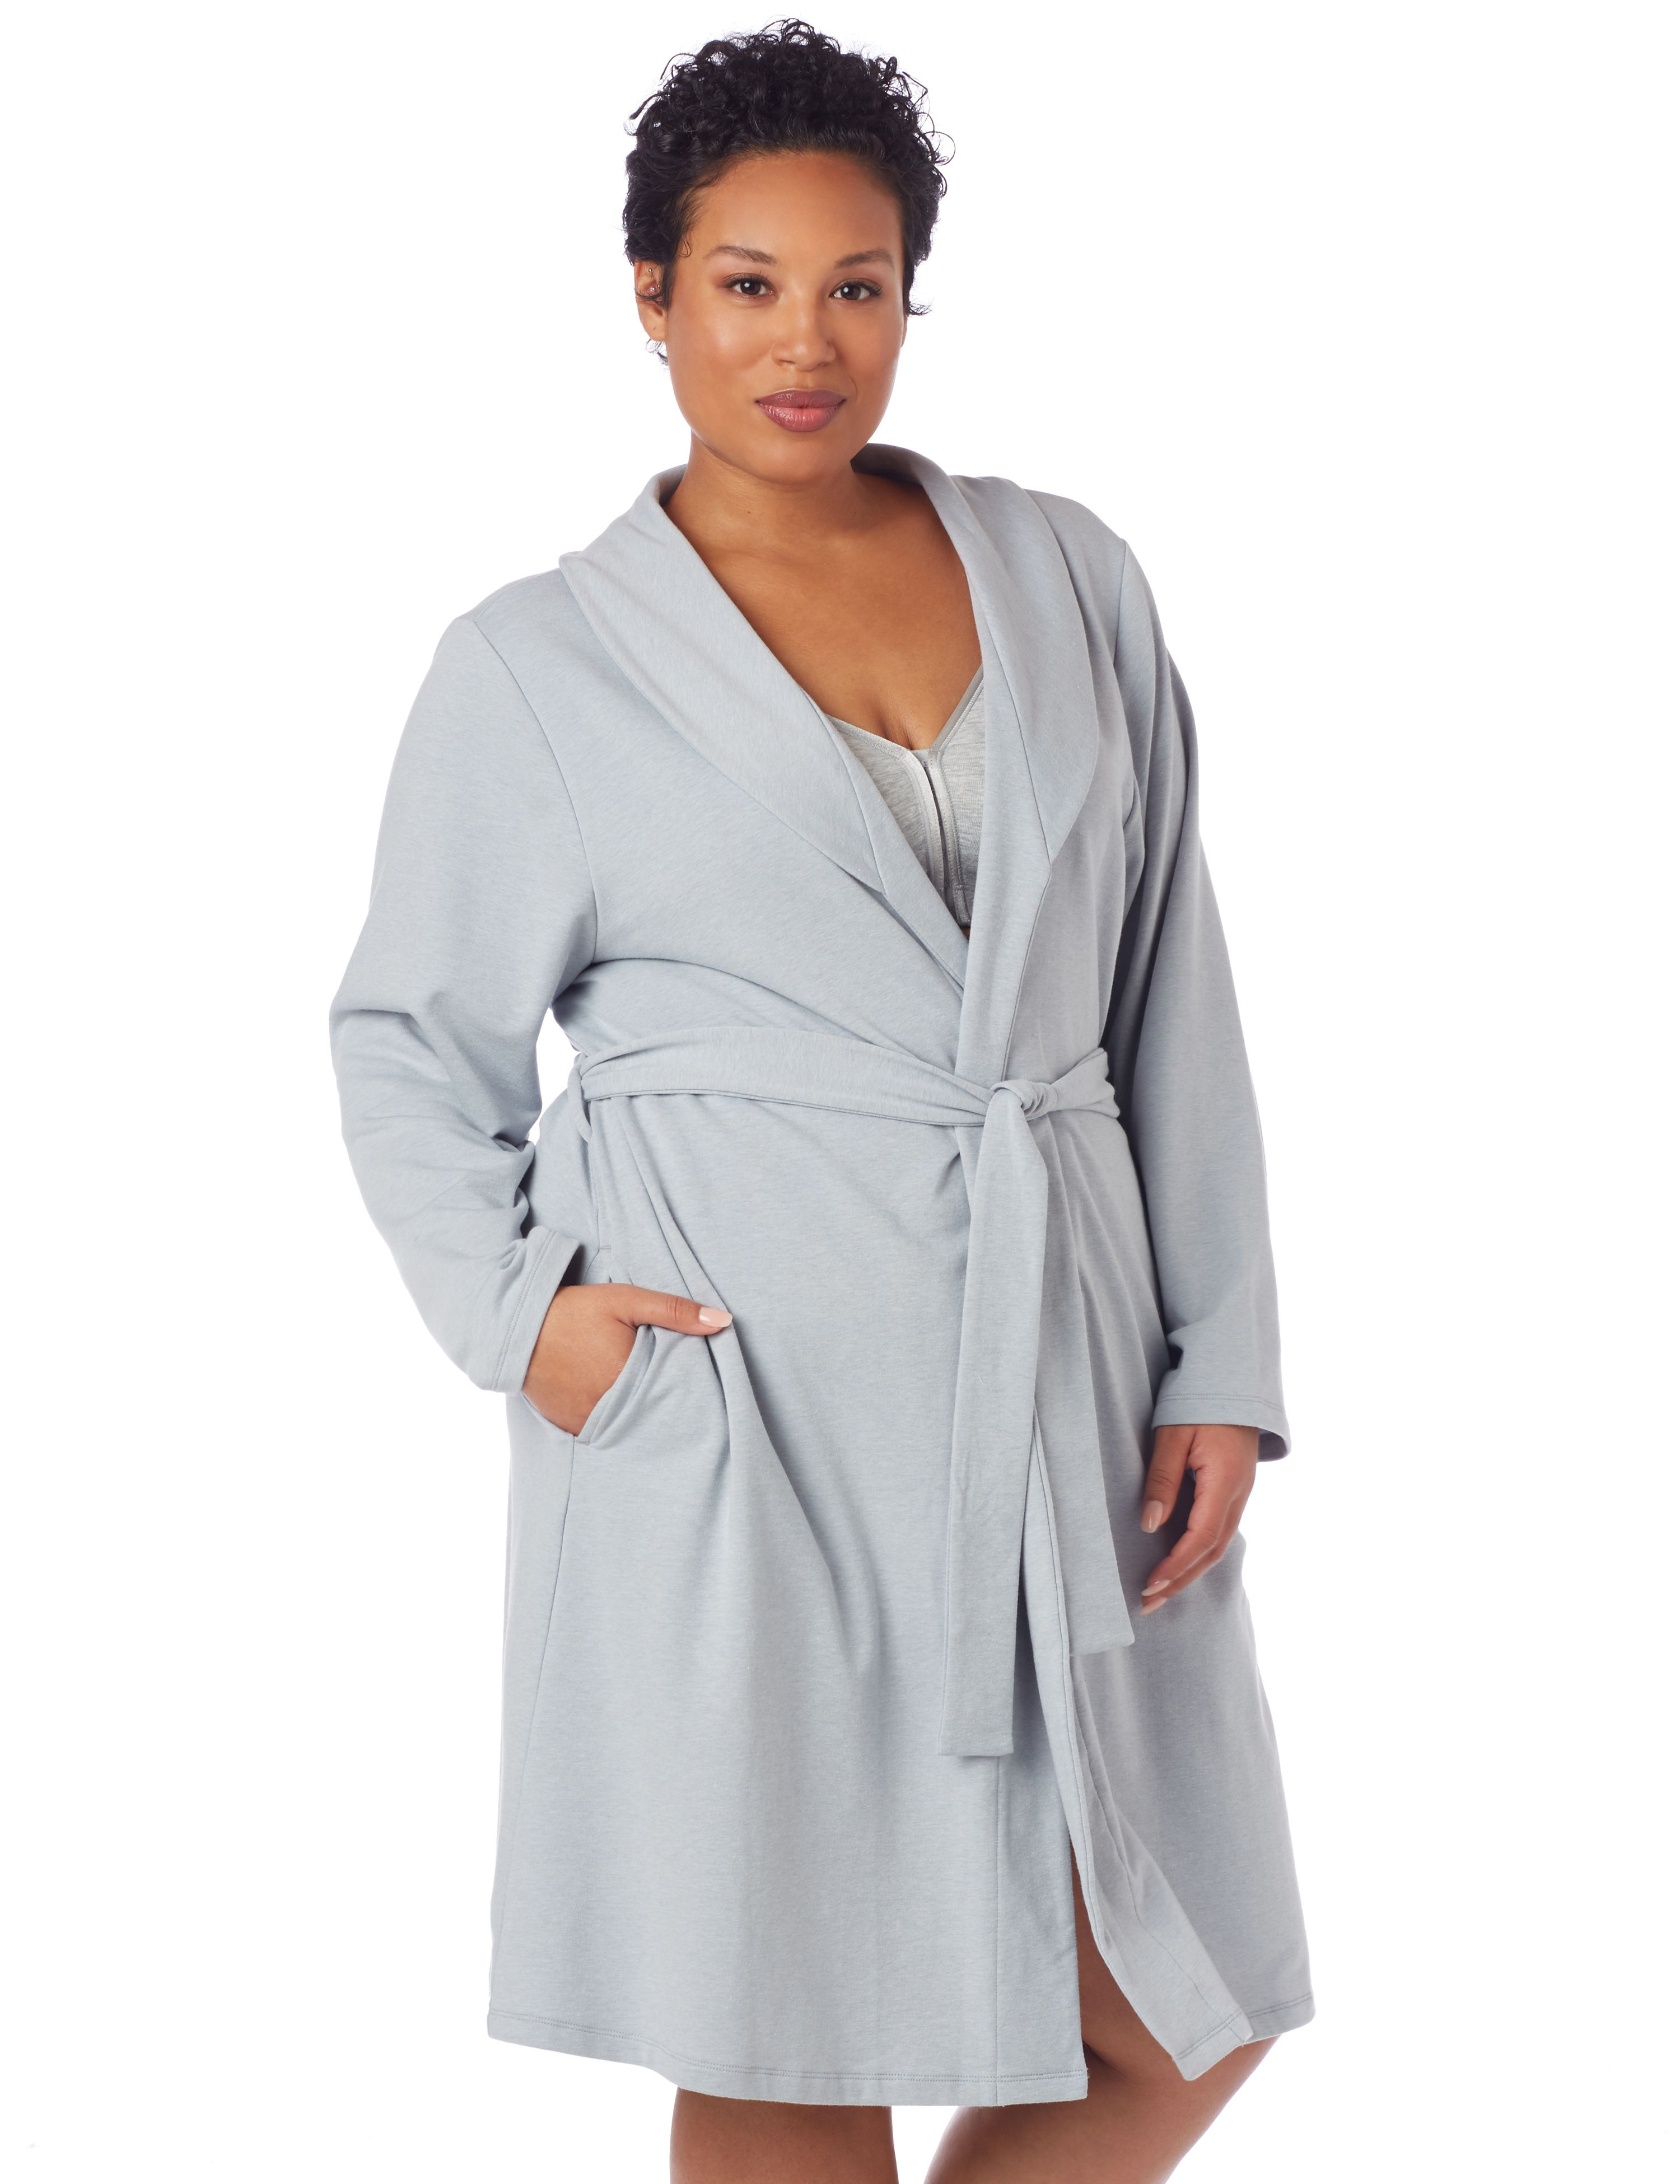 French Terry Robe Done MP-300095836